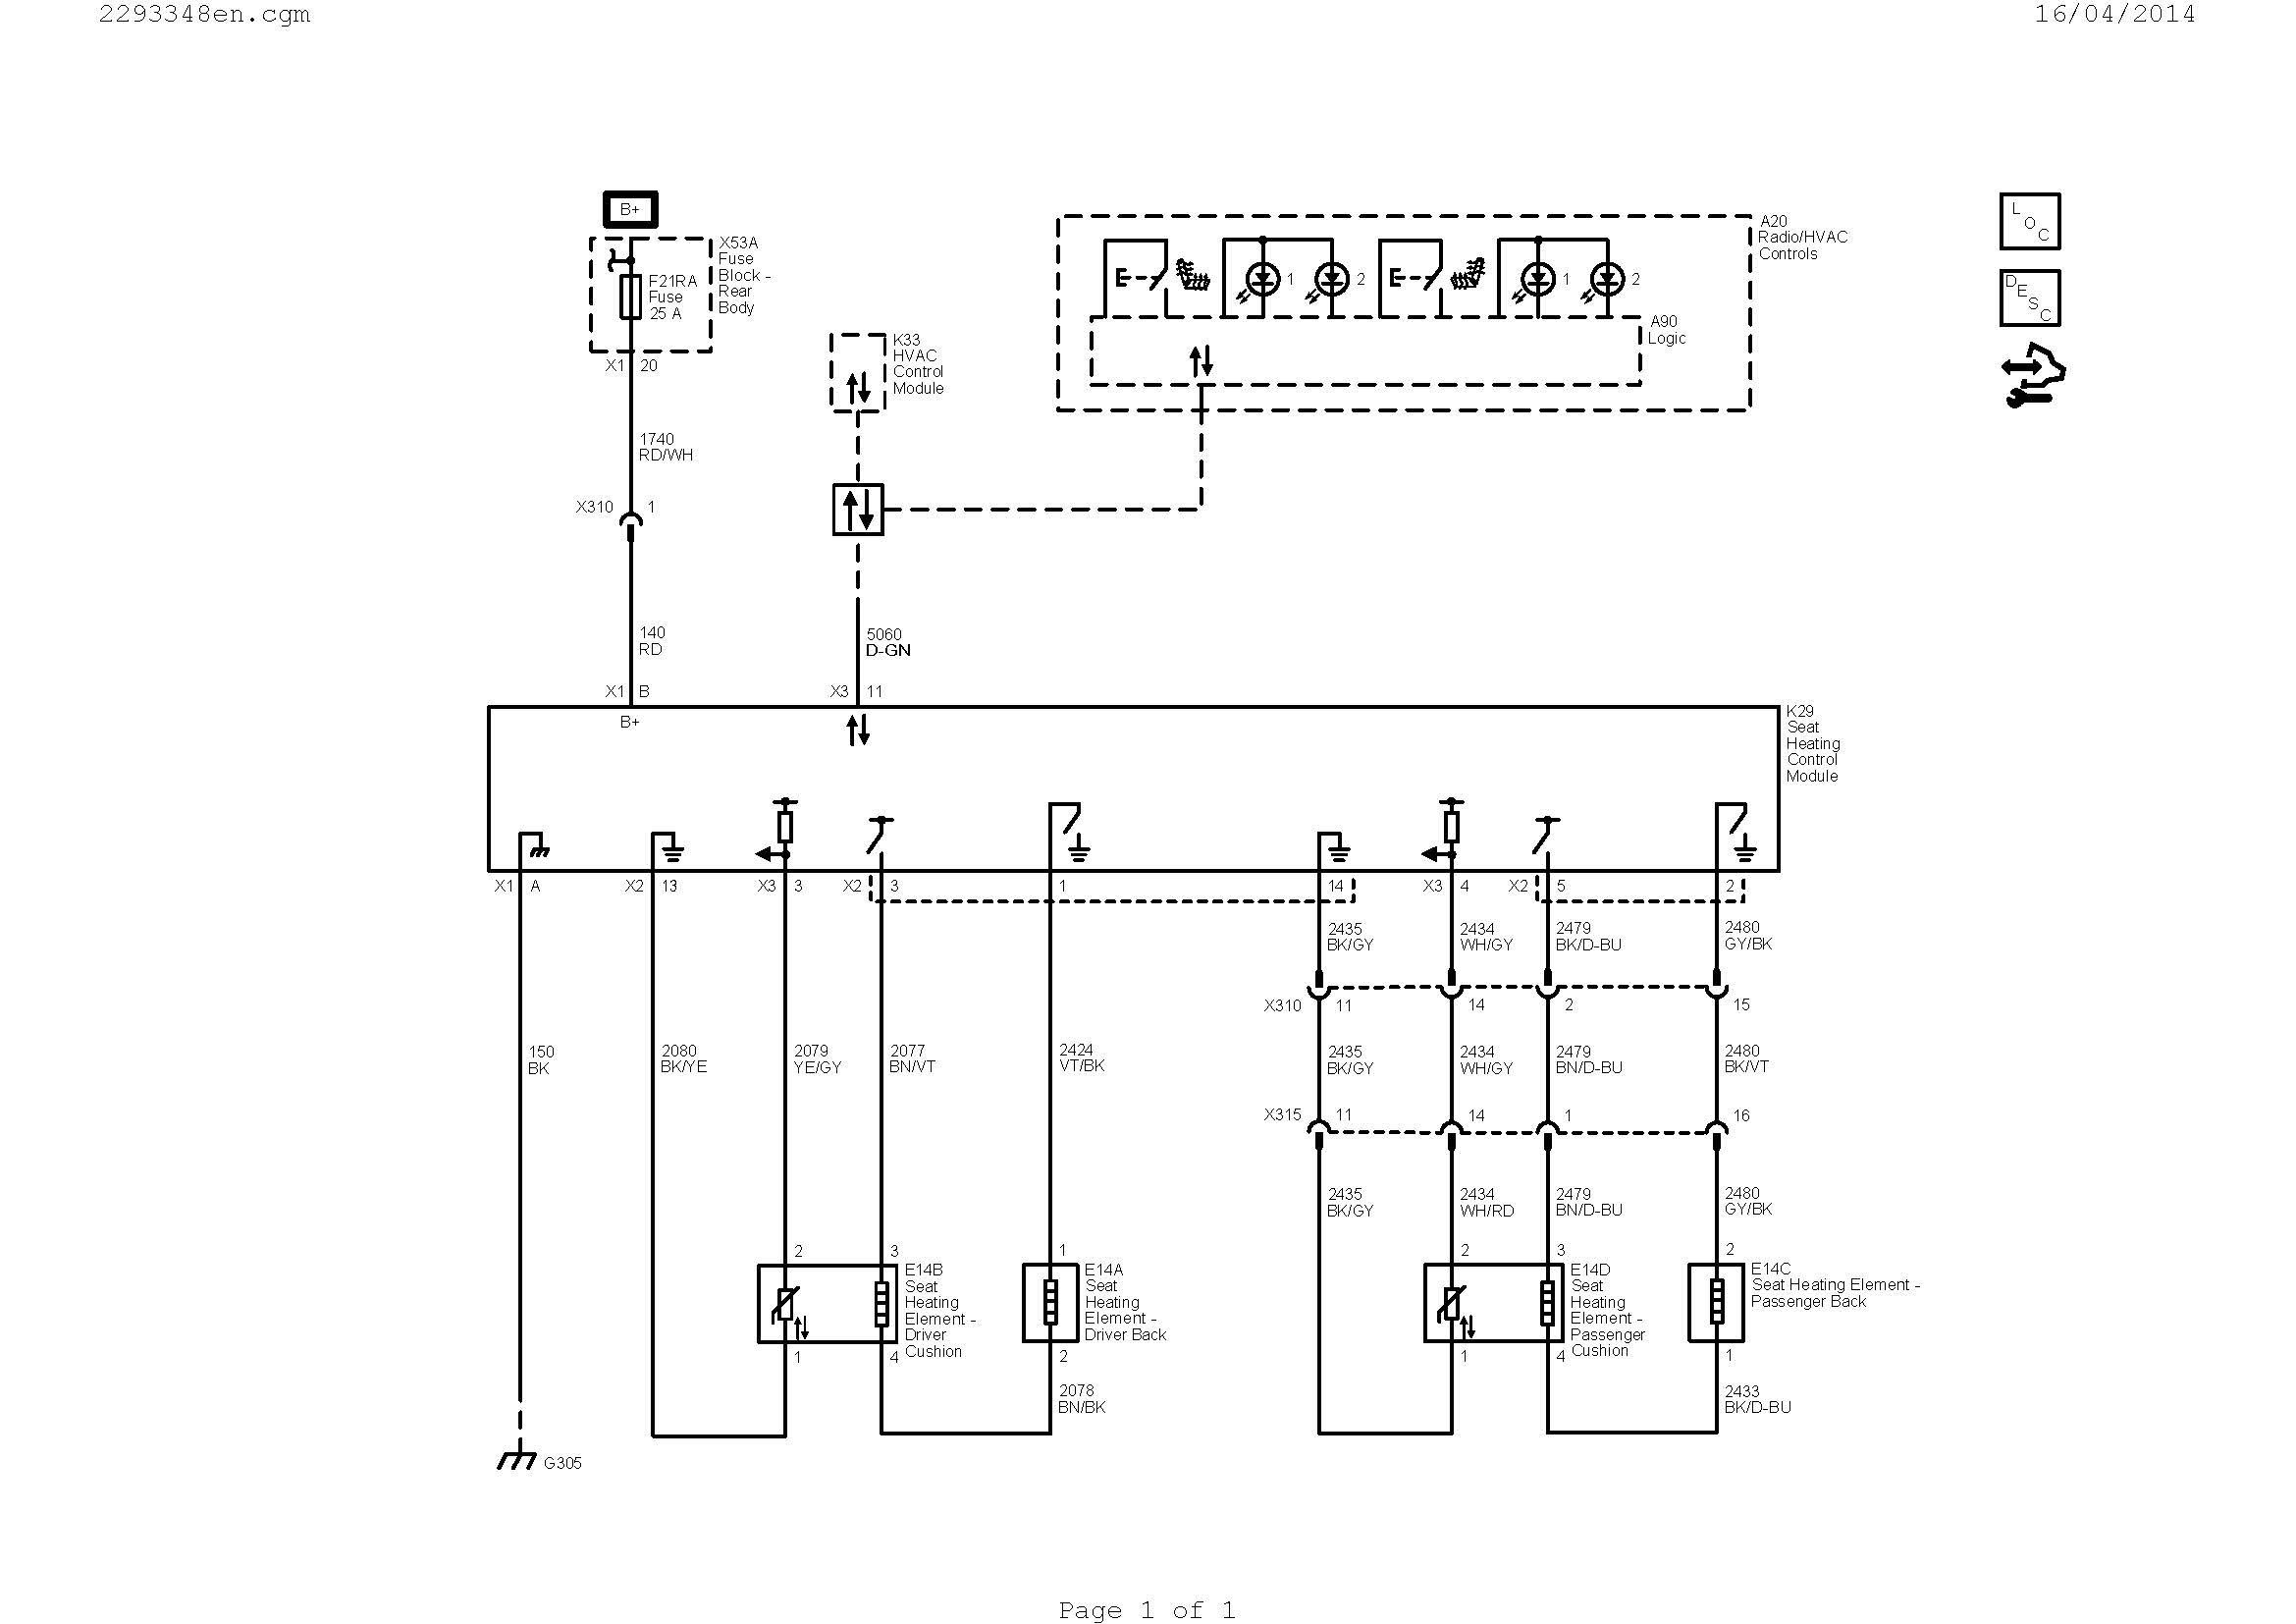 Commercial Hvac Wiring - Data Wiring Diagram Detailed - Nest Smoke Wiring Diagram